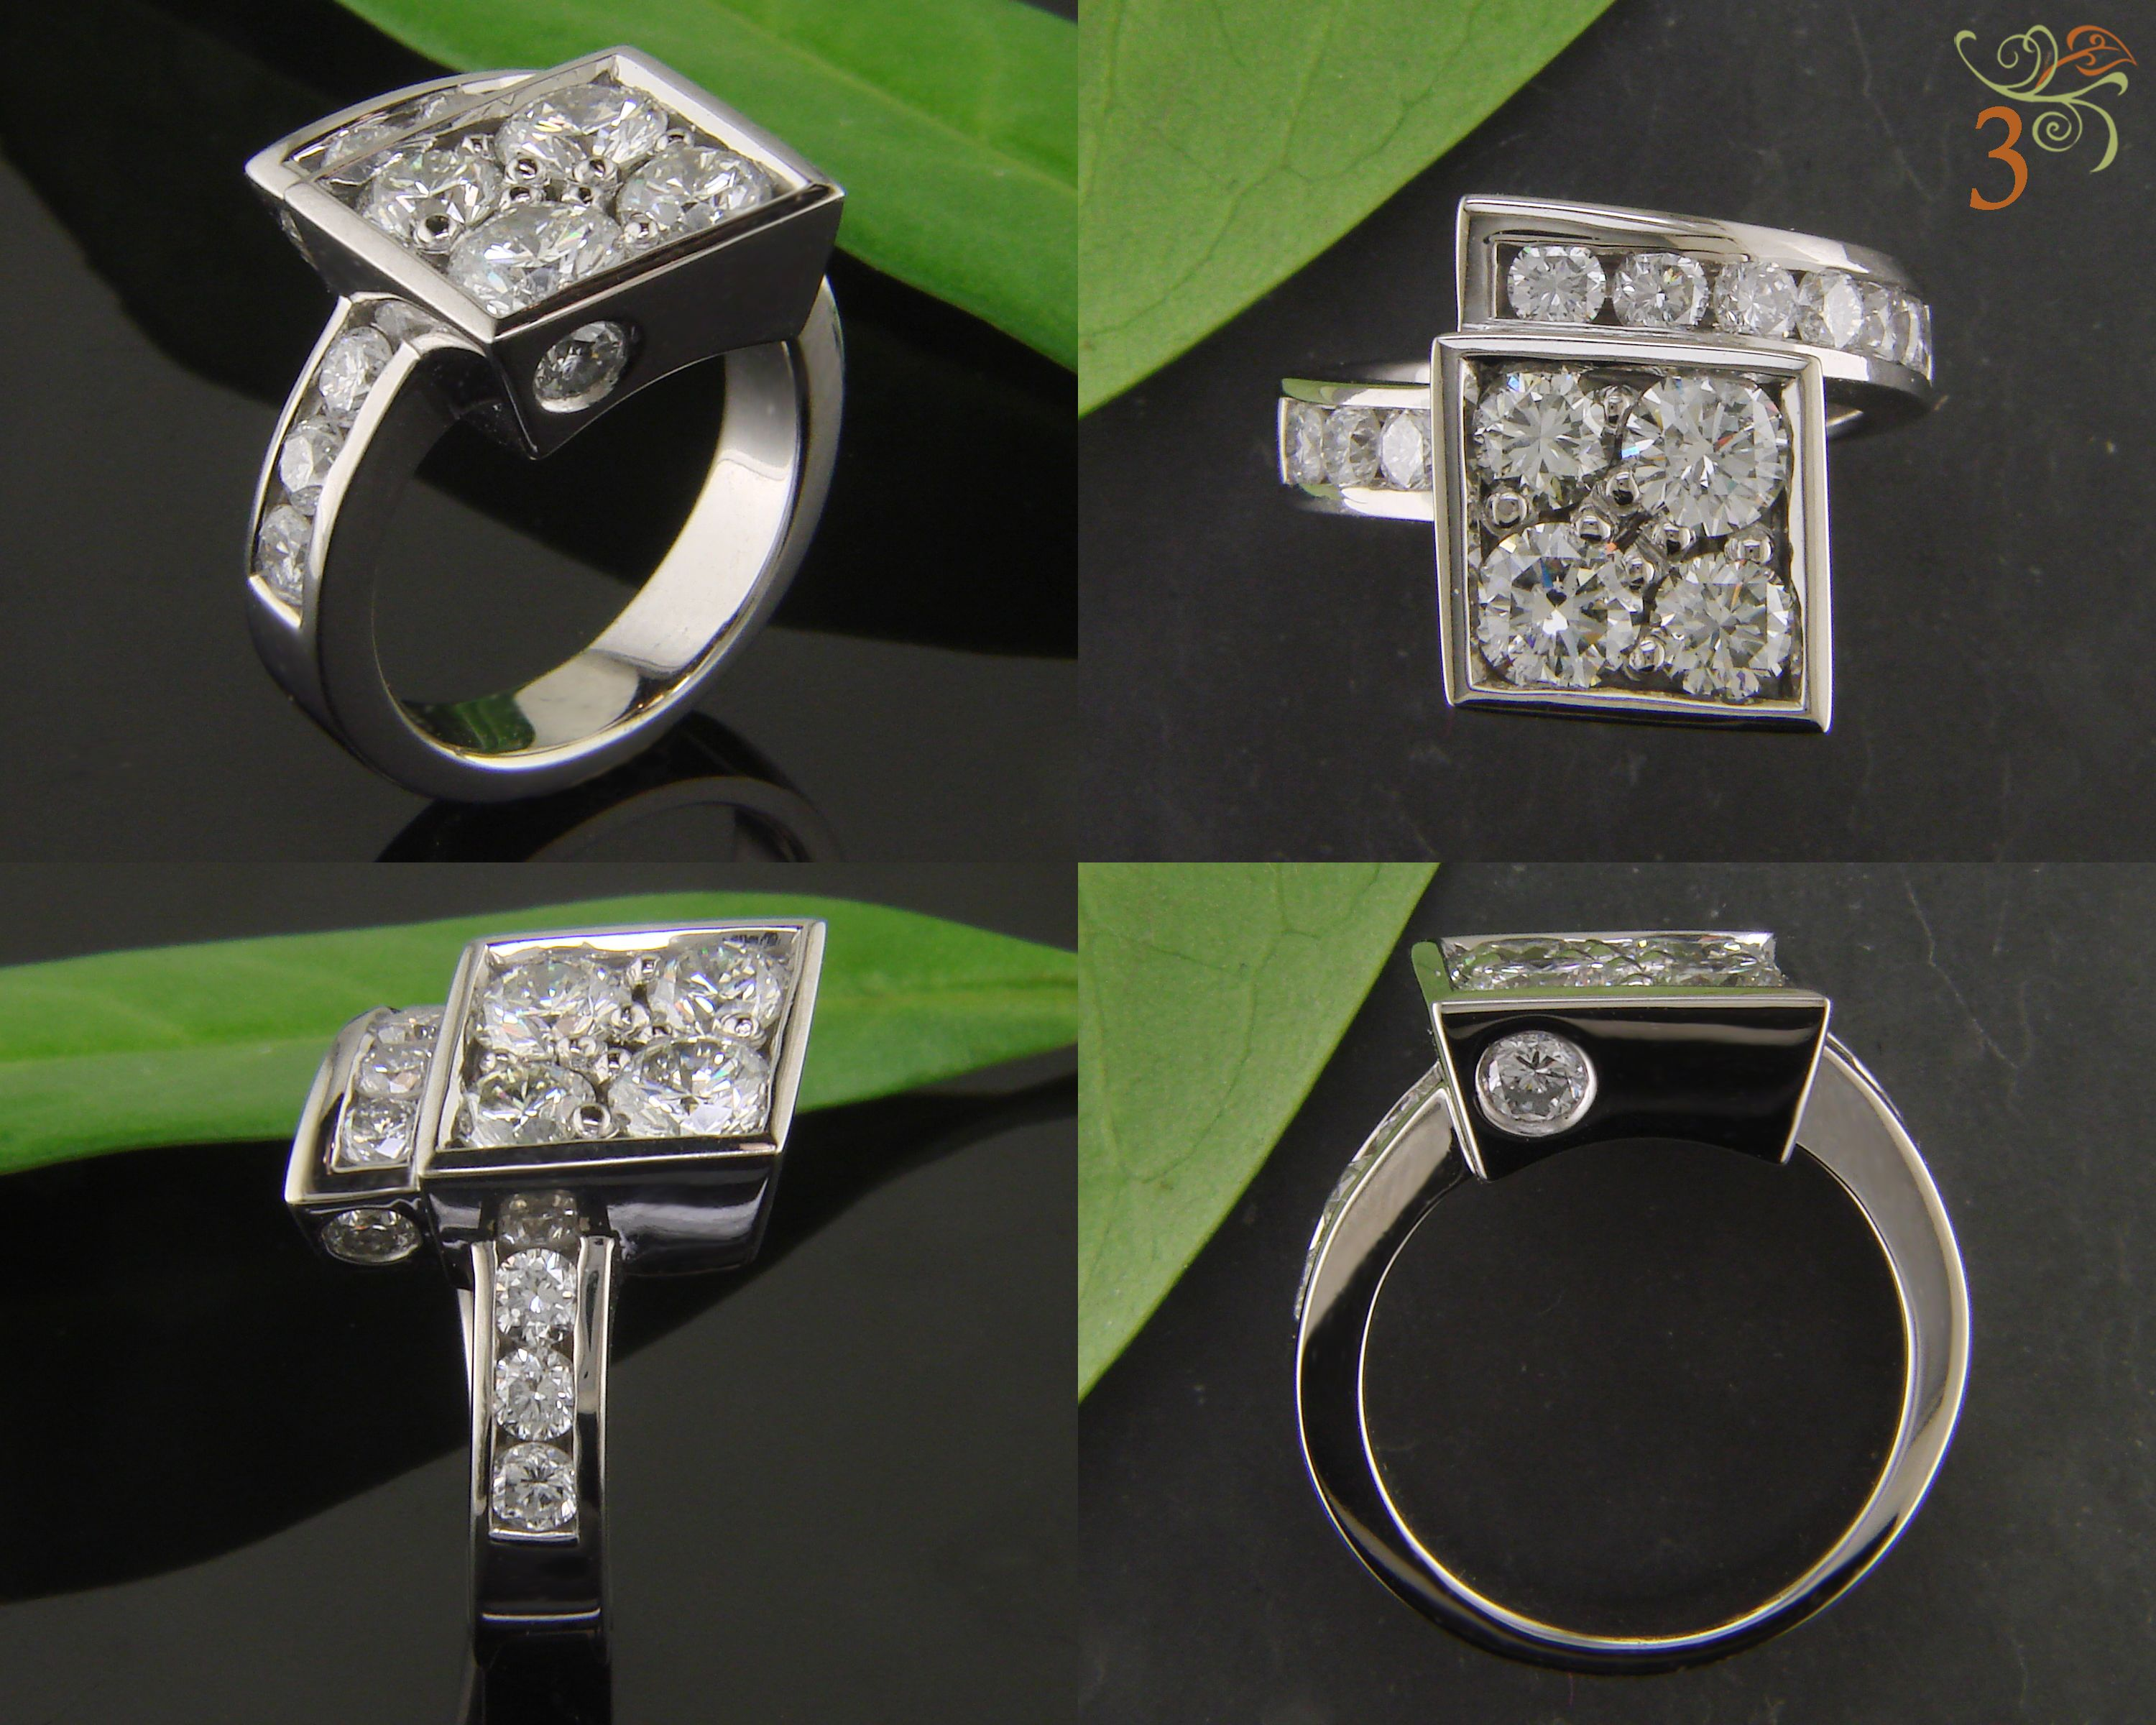 cert preston jewellers whittles rev emerald clipped ring month plat platinum products cut faroe em e diamond rings